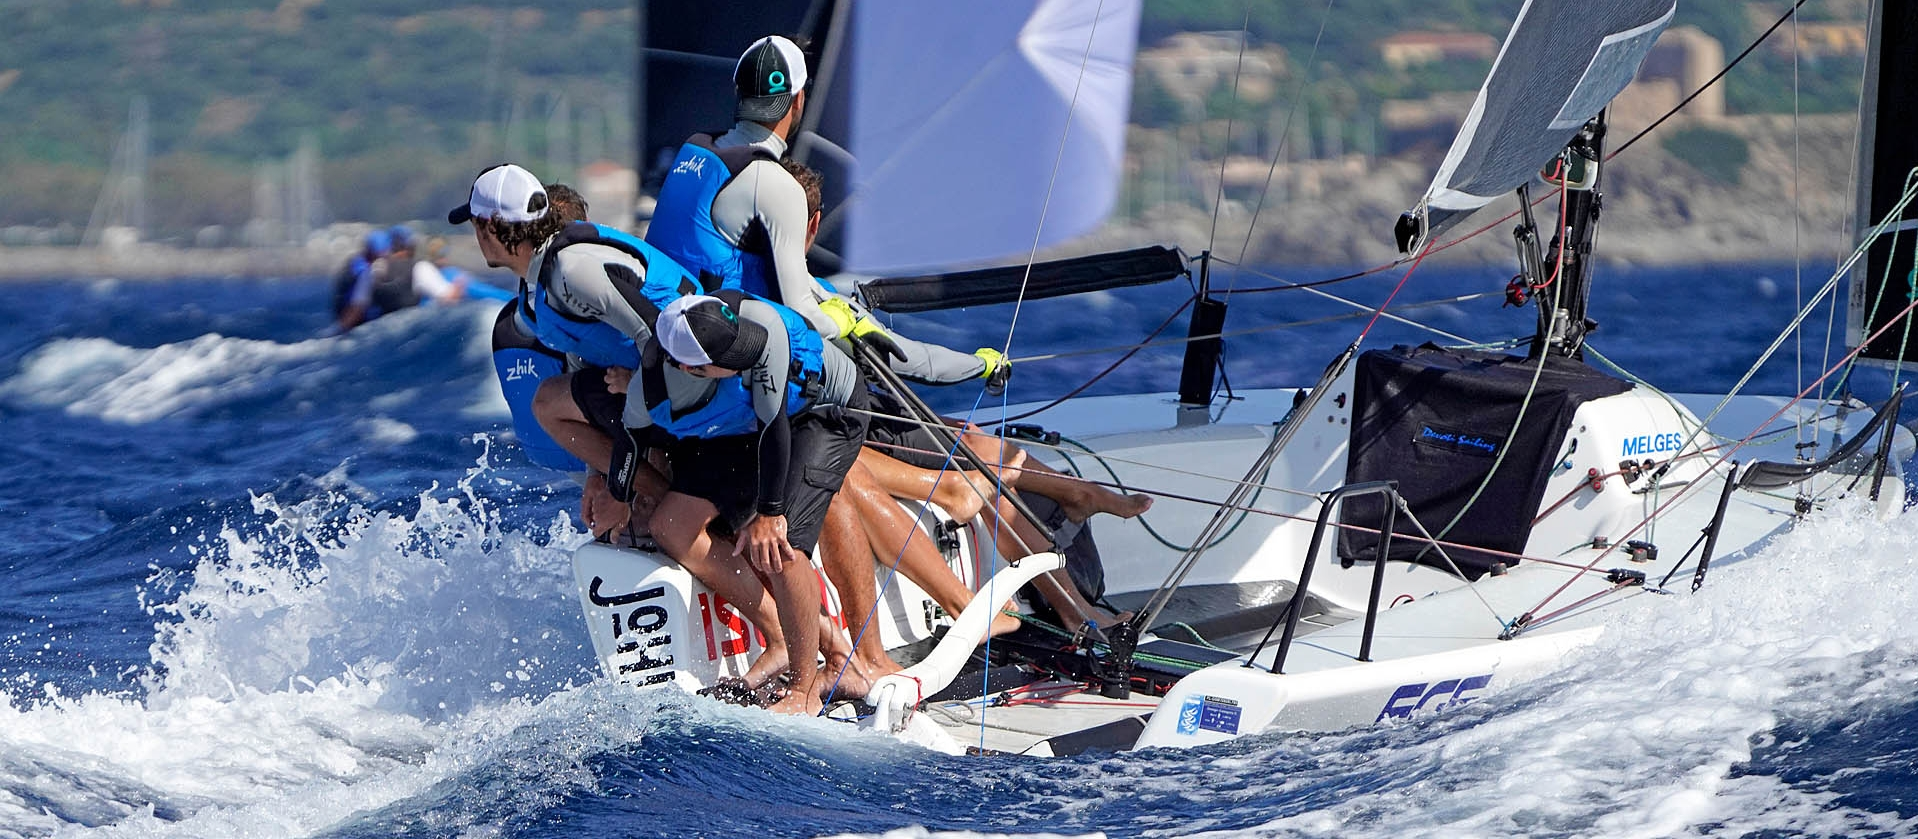 FGF Team HUN728 of Robert Bakoczy at the 2019 Melges 24 World Championship in Villasimius, Sardinia, Italy